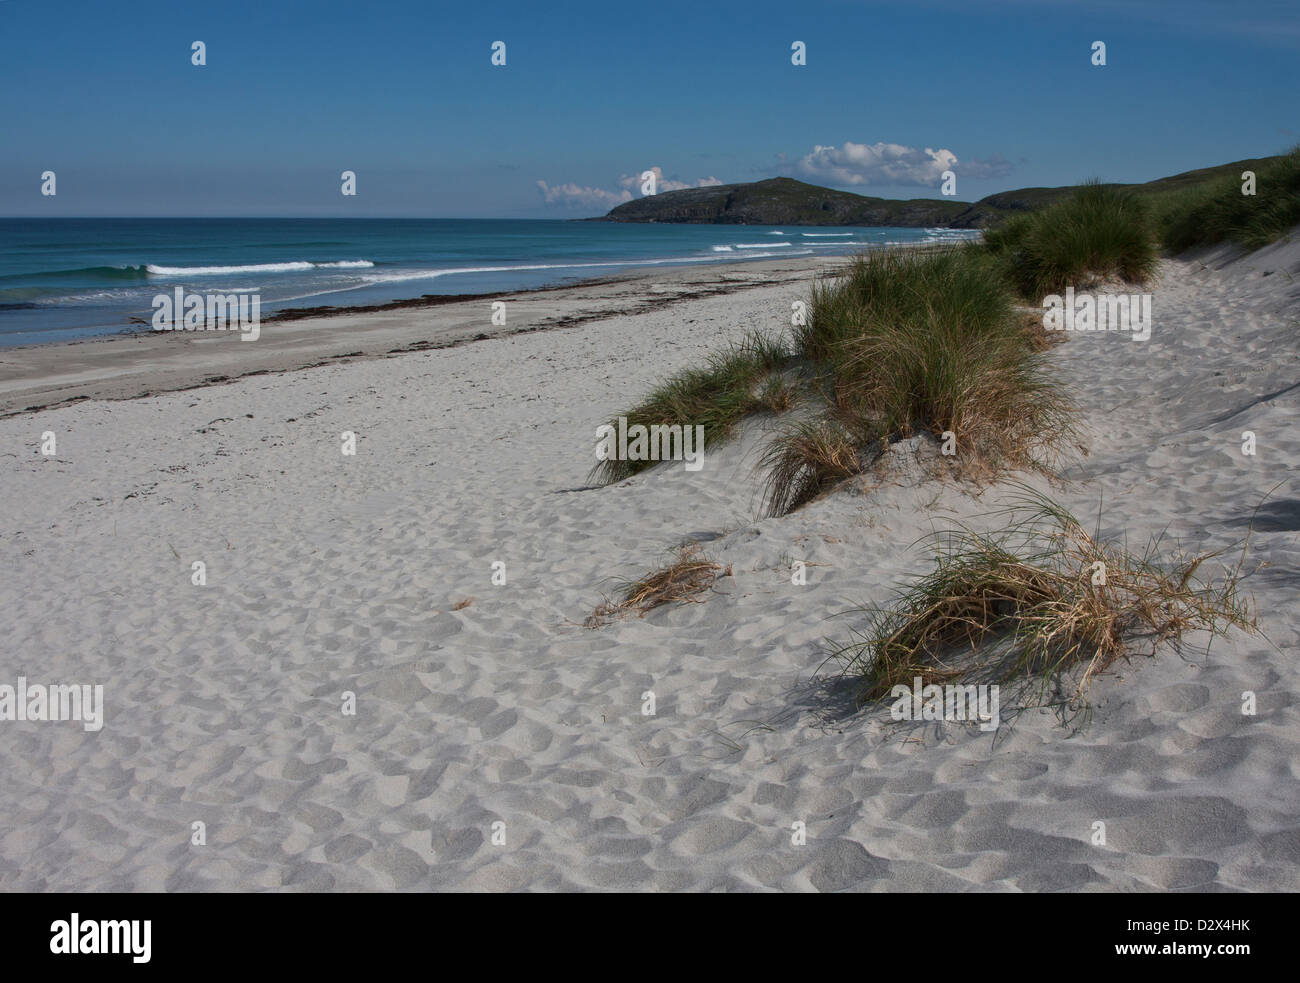 Sandy beach and dunes at Eiolgarry, Isle of Barra, Outer Hebrides, Western Isles, Scotland - Stock Image